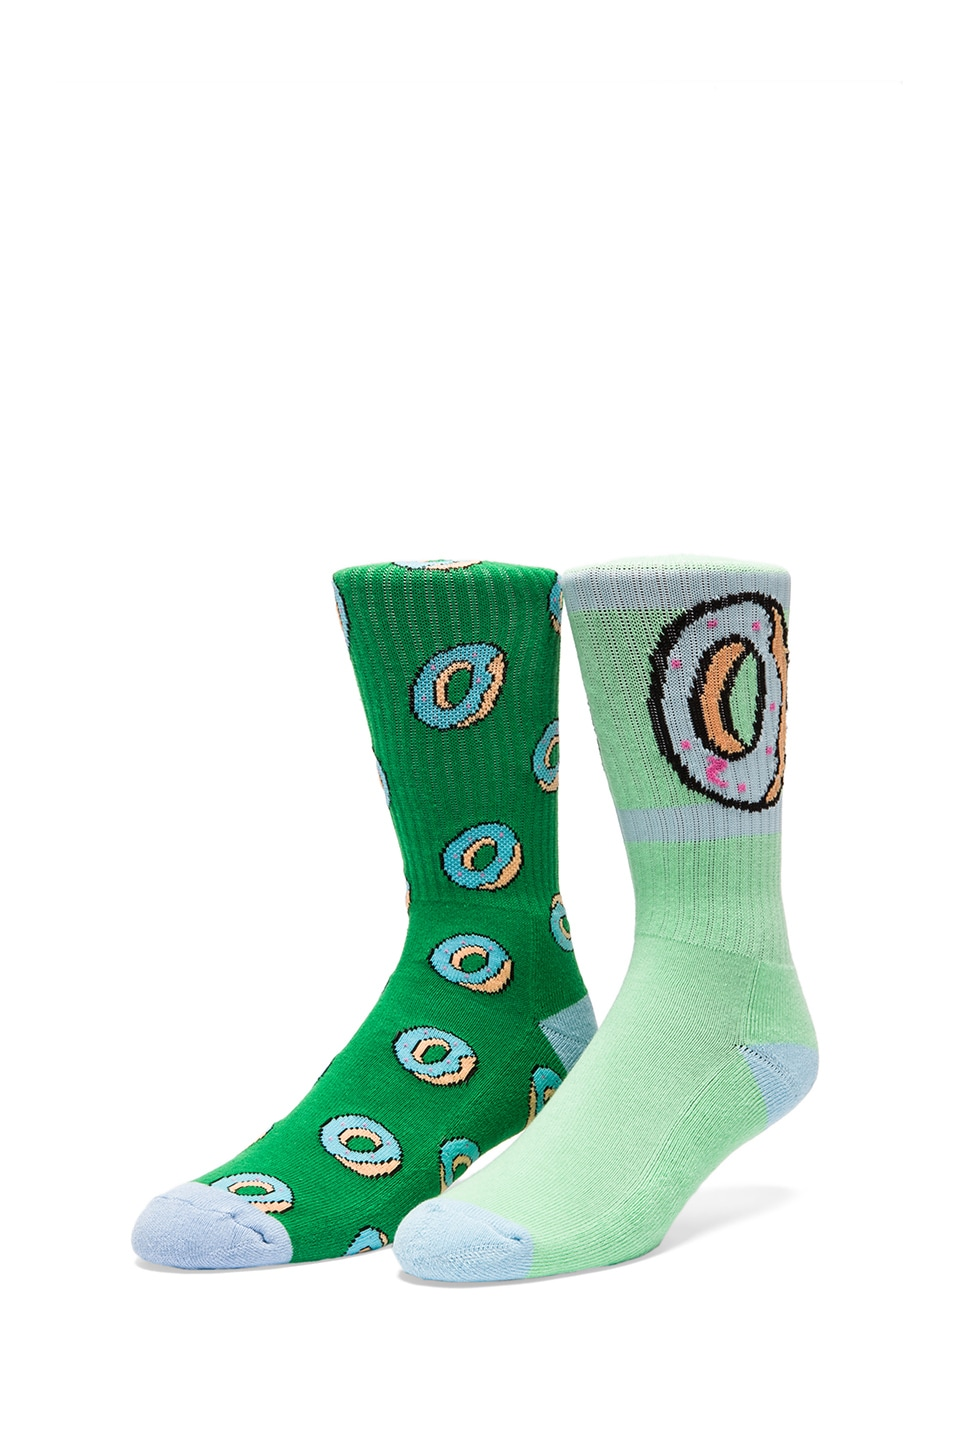 Odd Future Donut Allover Sock in Green, Odd Future OF Donut Sock in Green